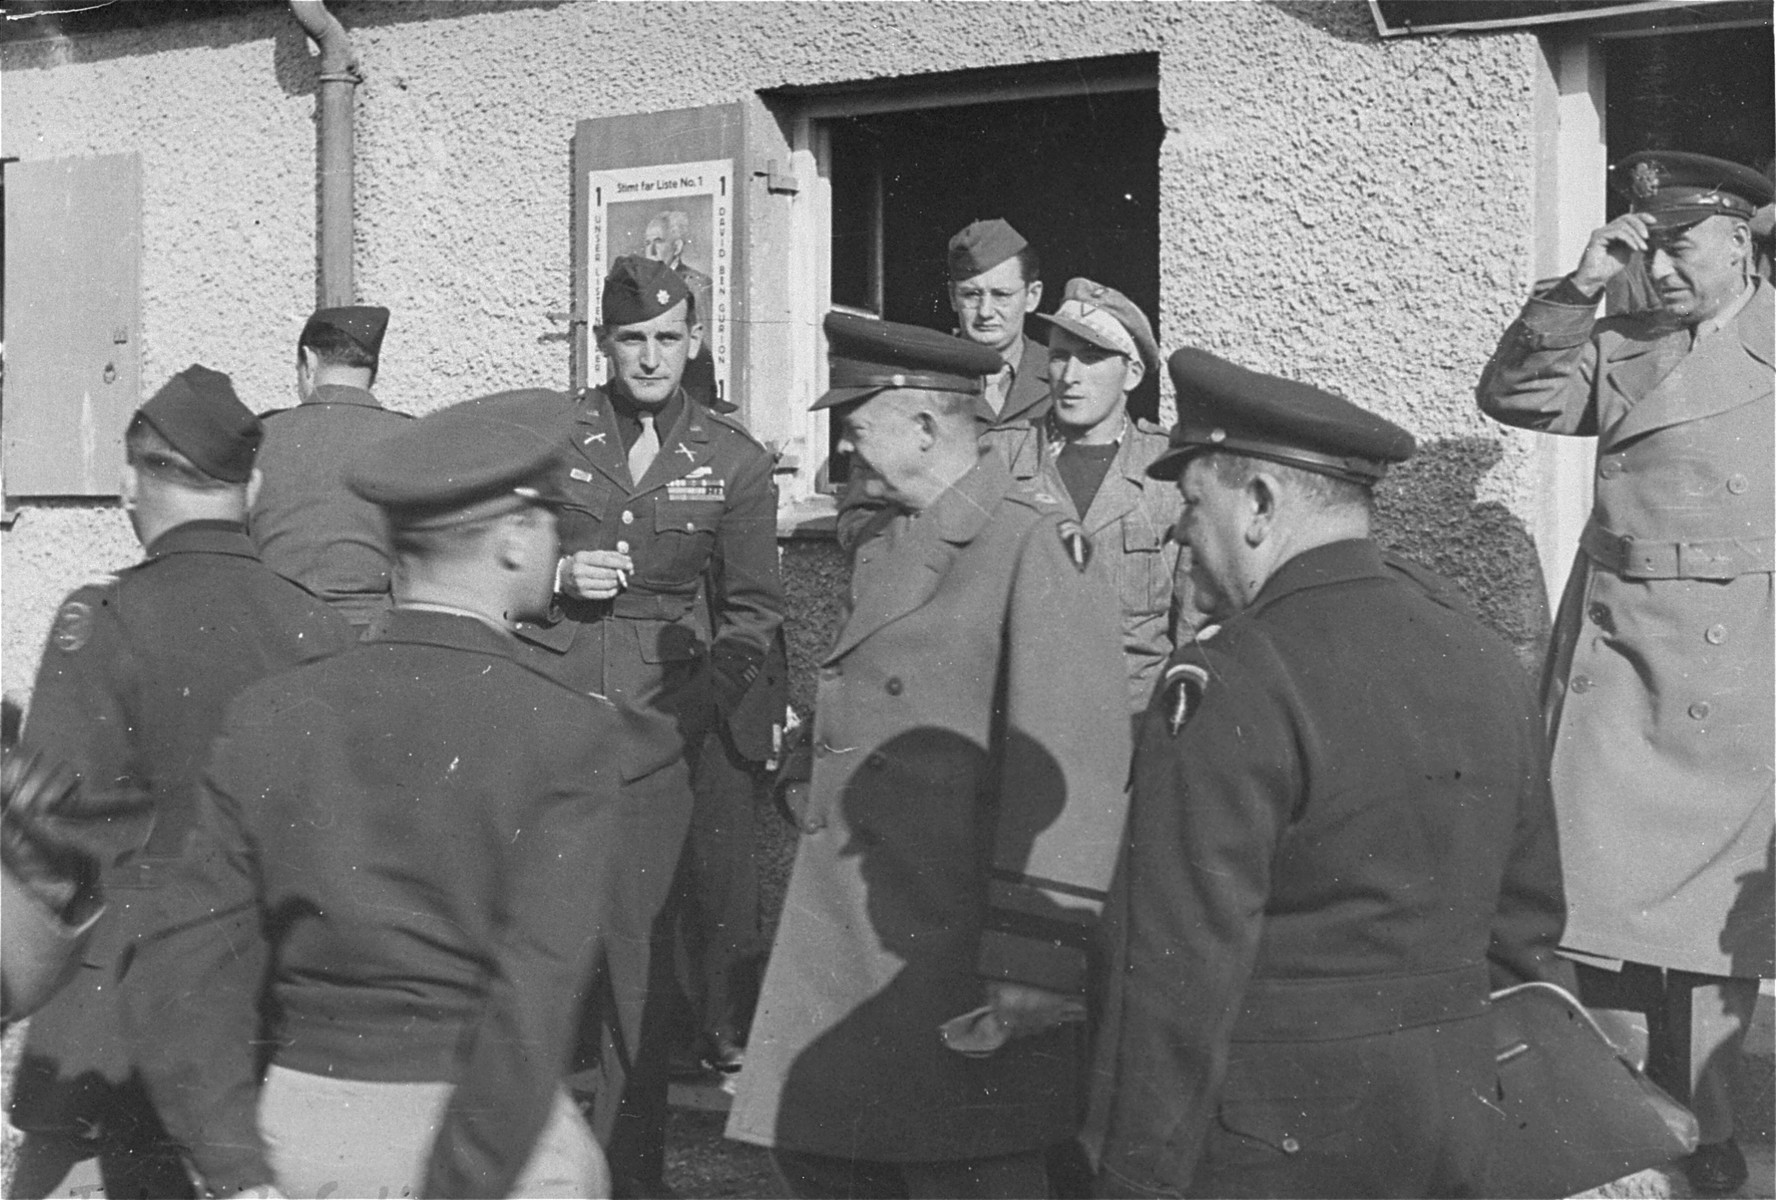 General Dwight Eisenhower walks out of the camp synagogue during an official tour of the Neu Freimann displaced persons' camp.  Eisenhower's visits to Neu Freimann and other displaced persons' camps in the fall of 1945 was prompted by a strongly worded cable he received  from President Truman directing him to institute reforms to improve living conditions of displaced Jews in the American zone of occupation.